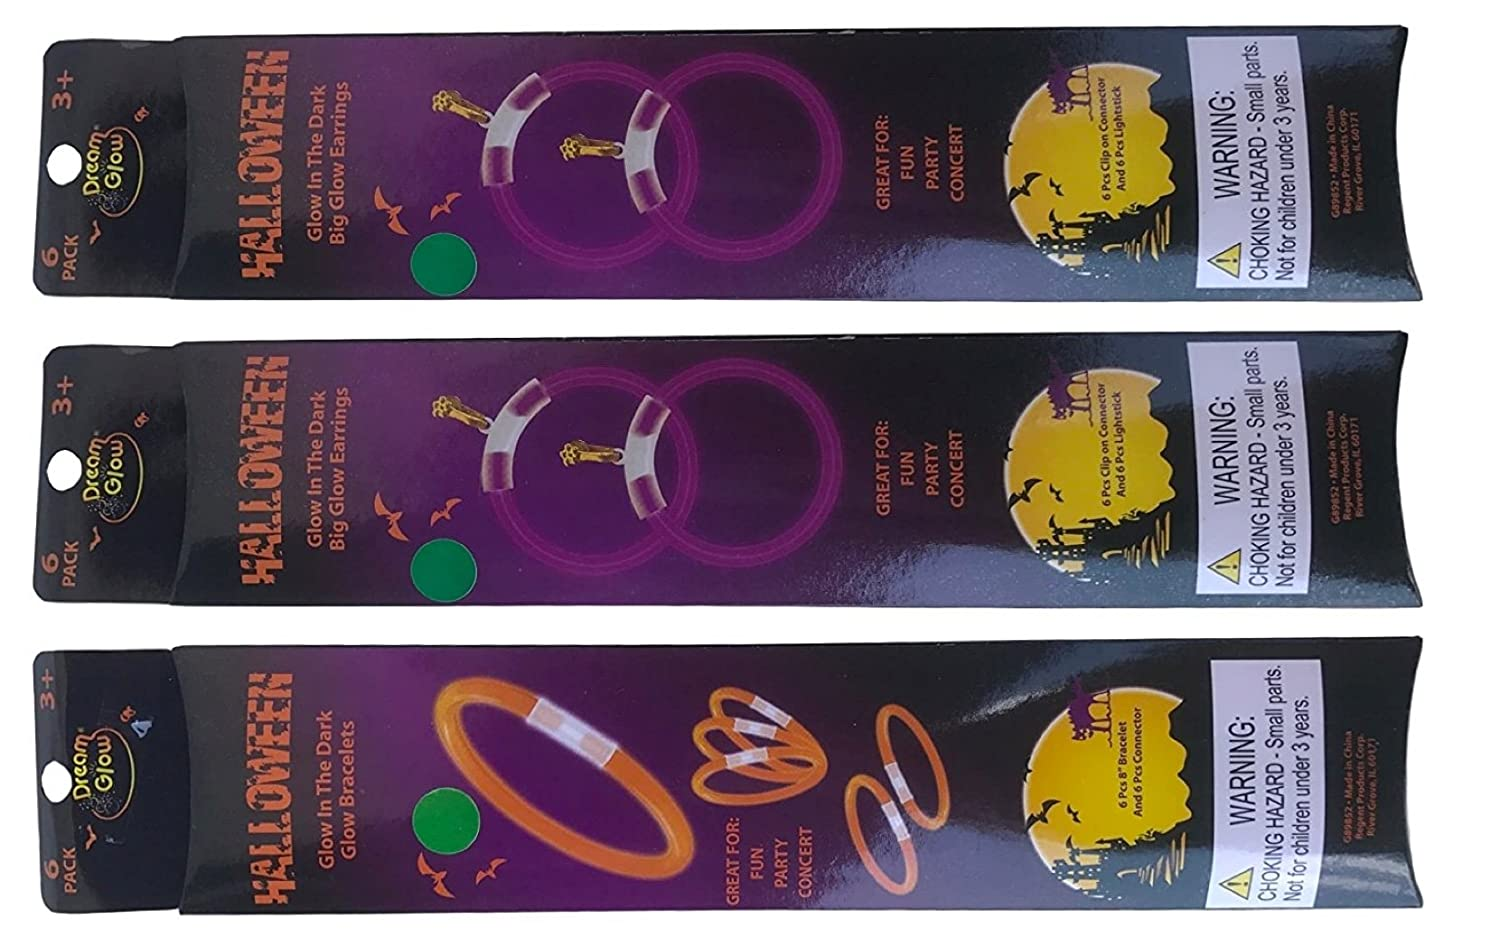 Glow in the Dark Earrings and Bracelets Sets of 6